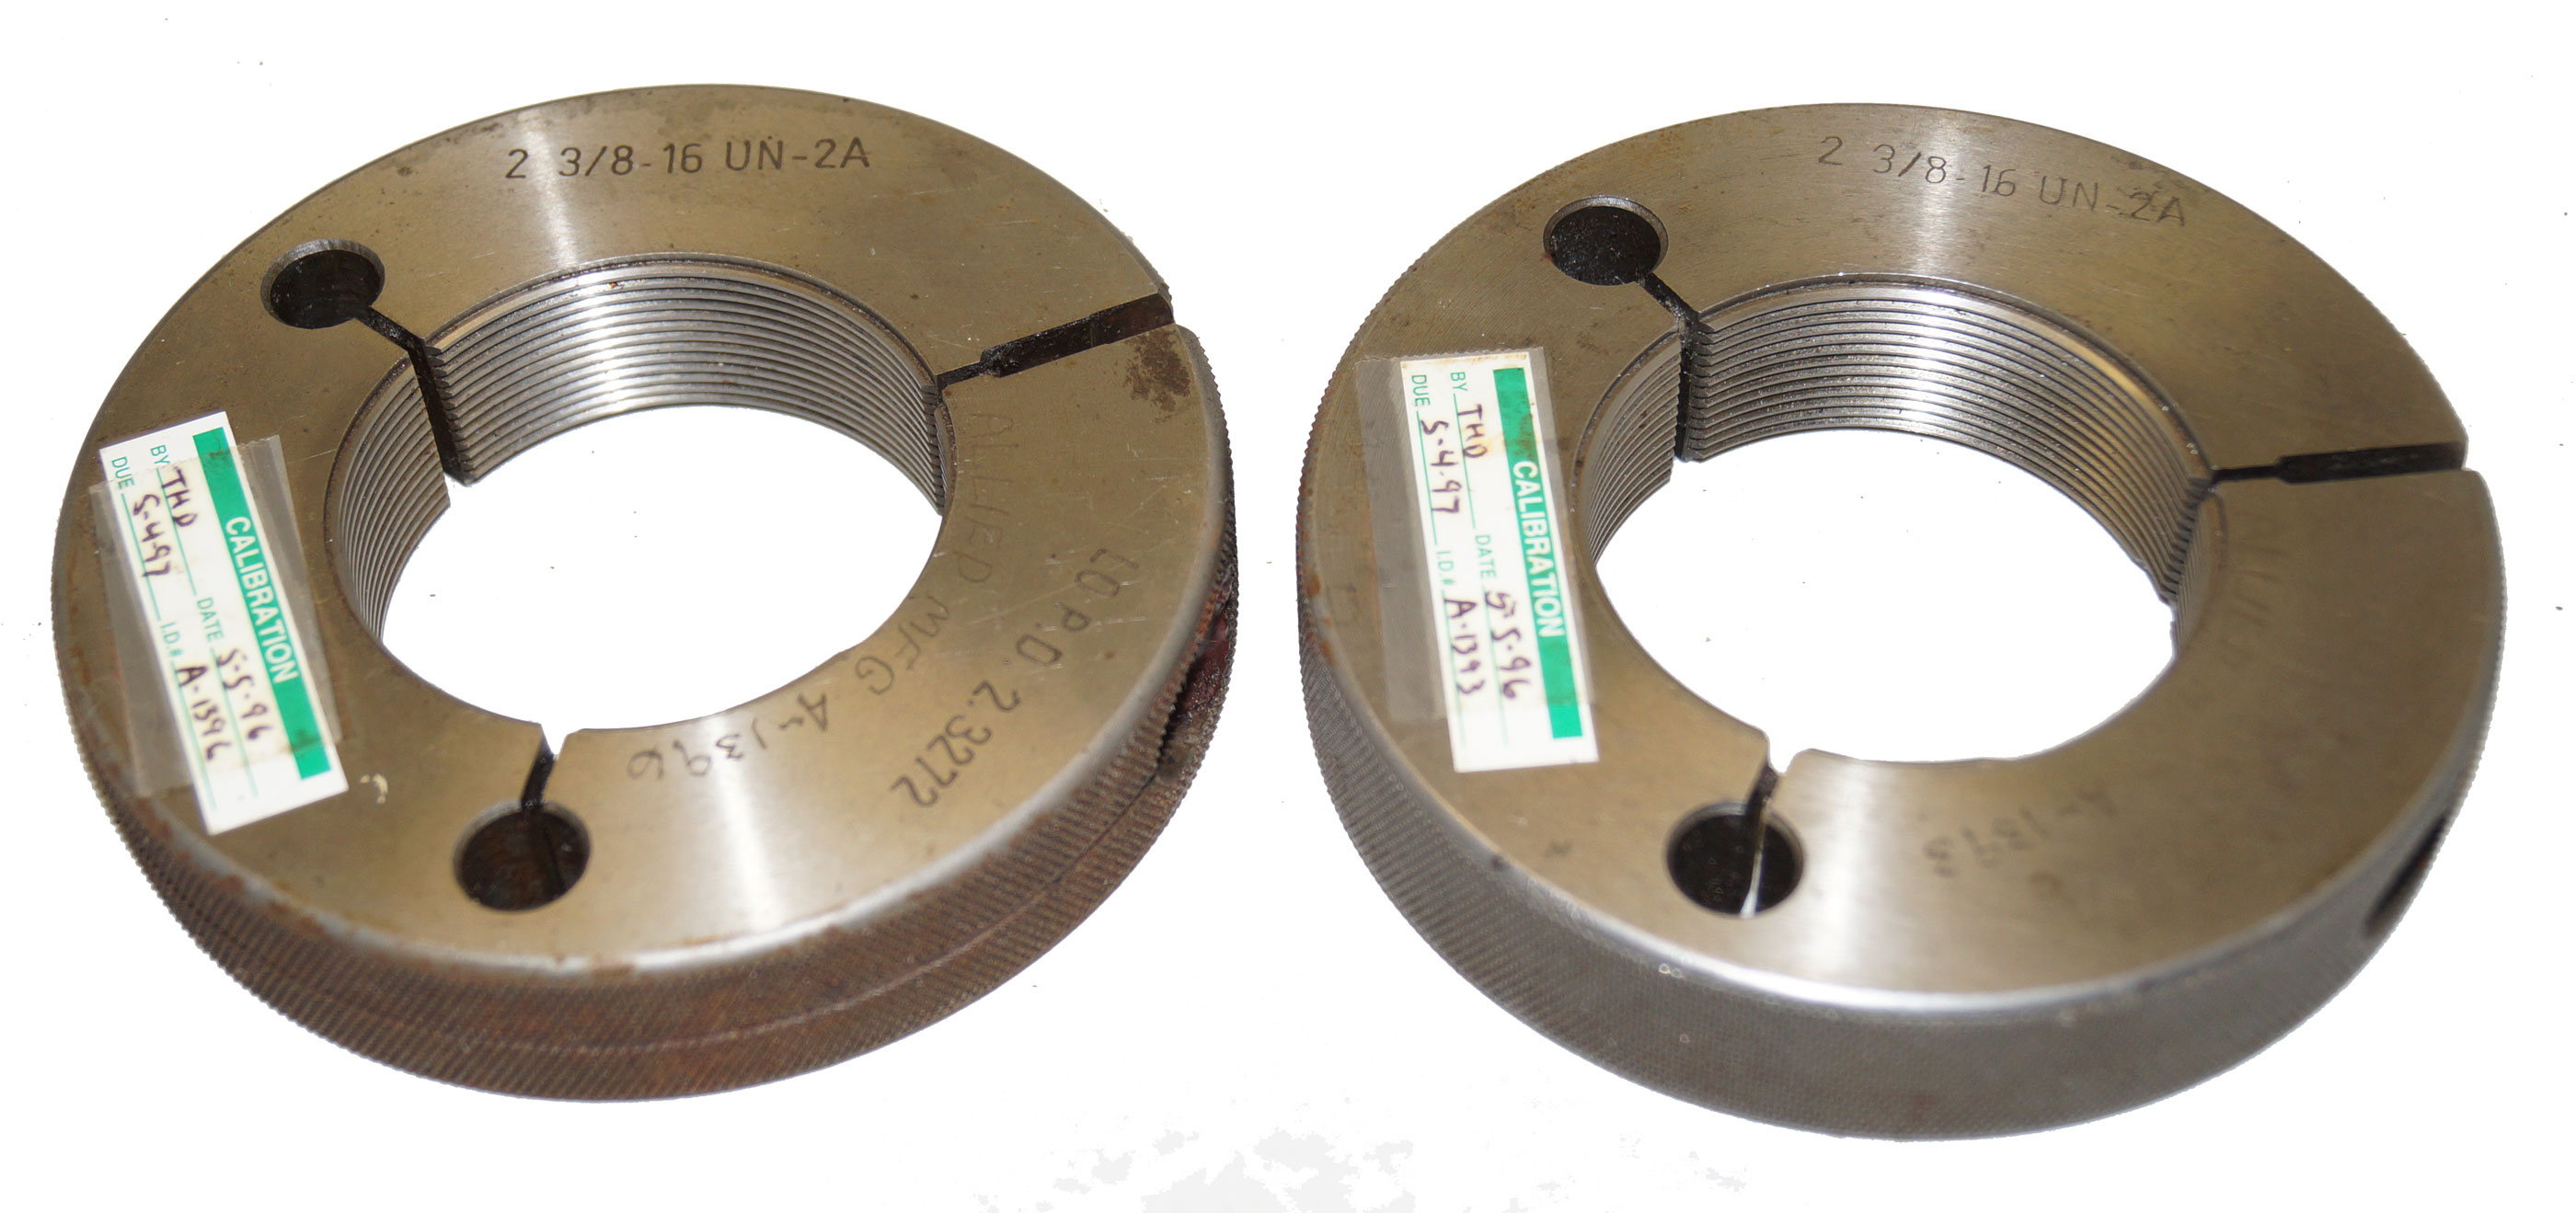 2-3/8 - 16 UN-2A Thread Gage Ring Go/NoGo